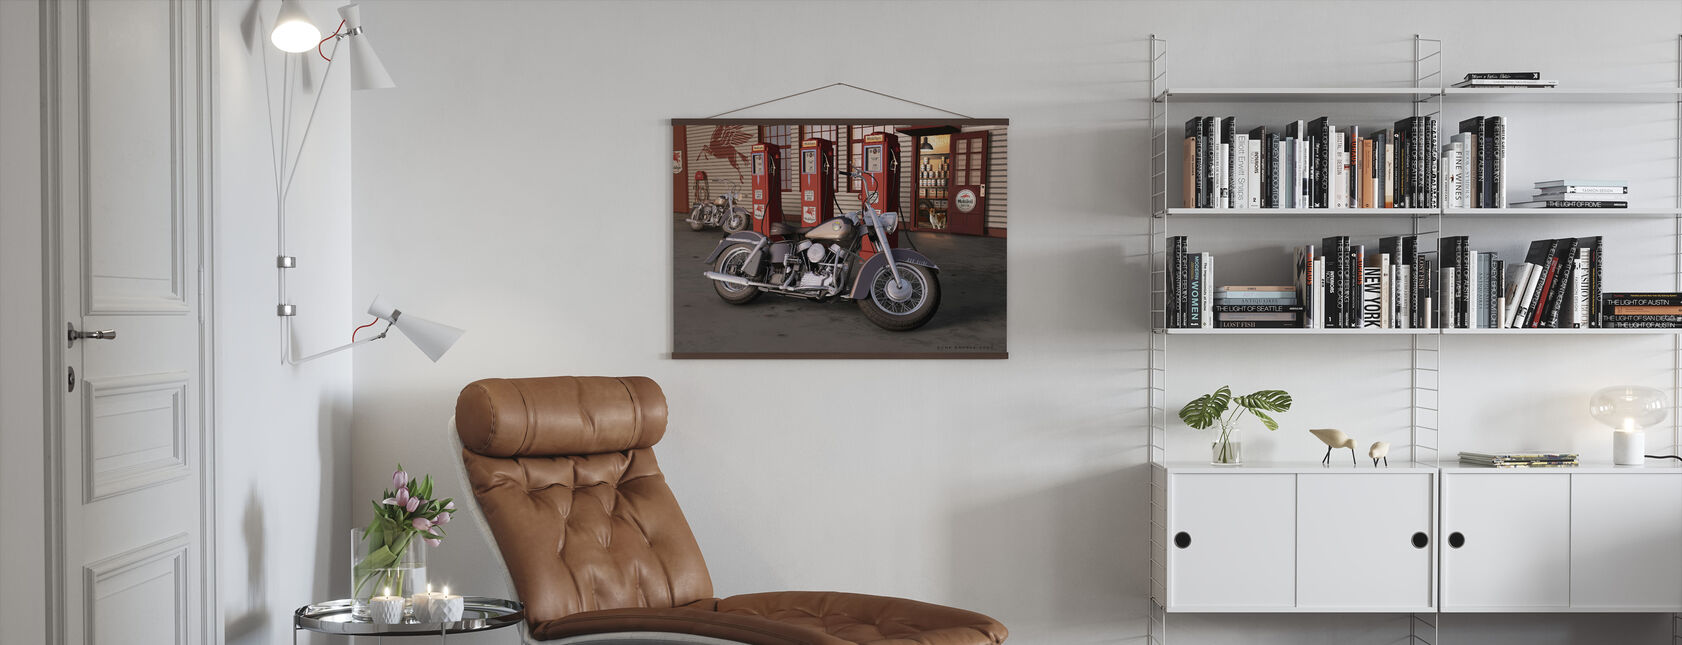 Twilight Dogs - Poster - Living Room